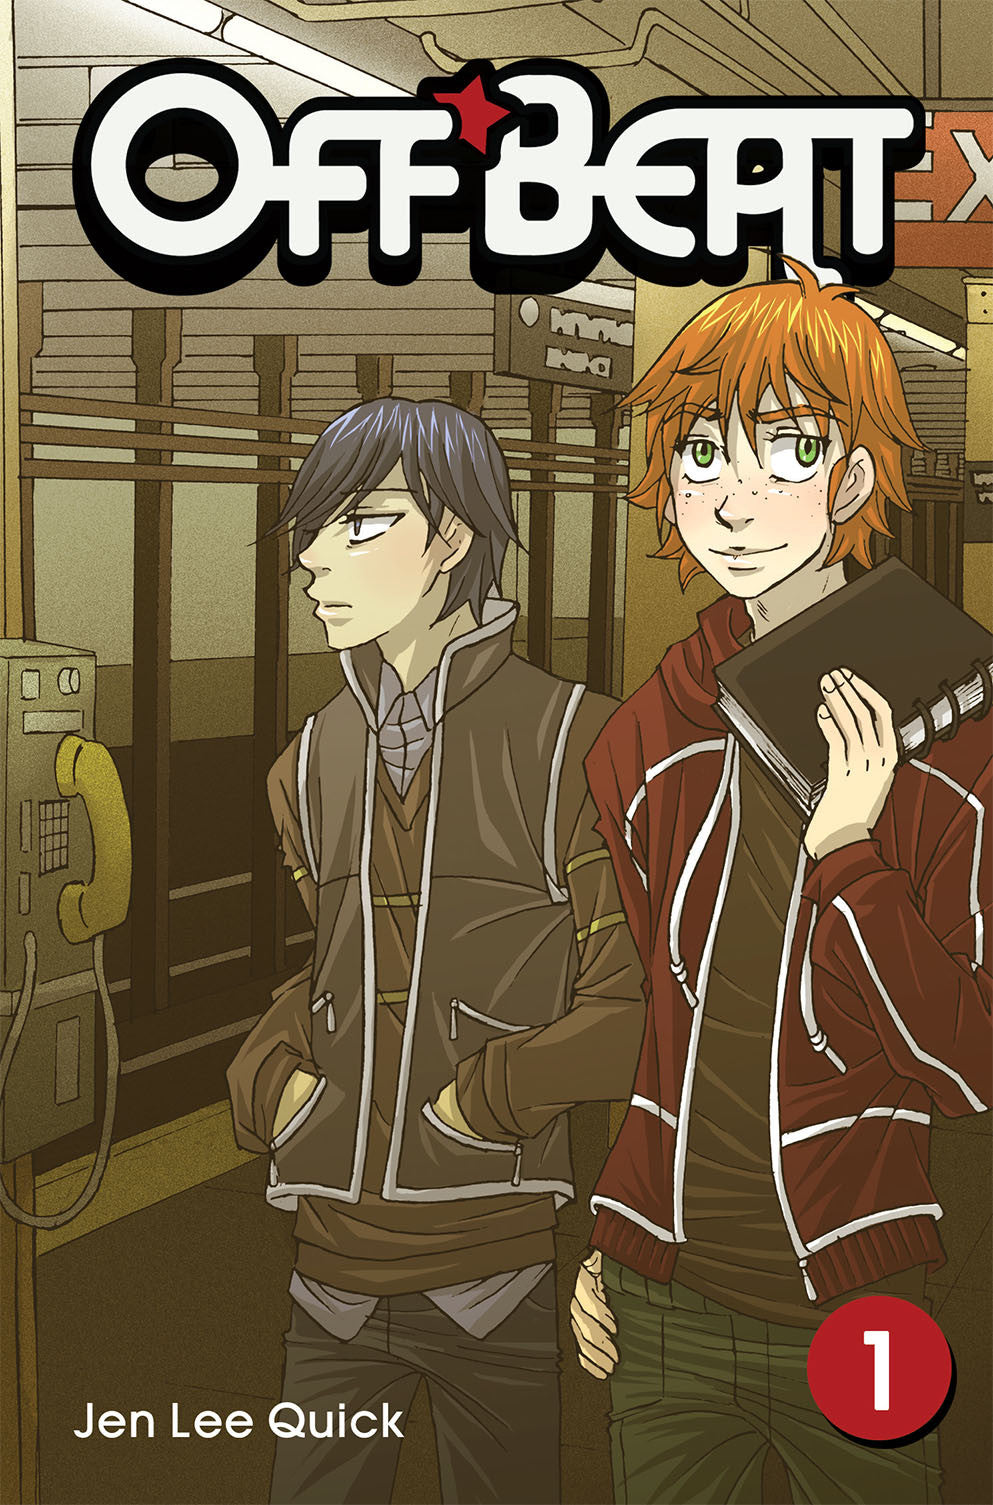 Off*Beat - Volume 1 - Ebook from Off*Beat - Webcomic Merchandise